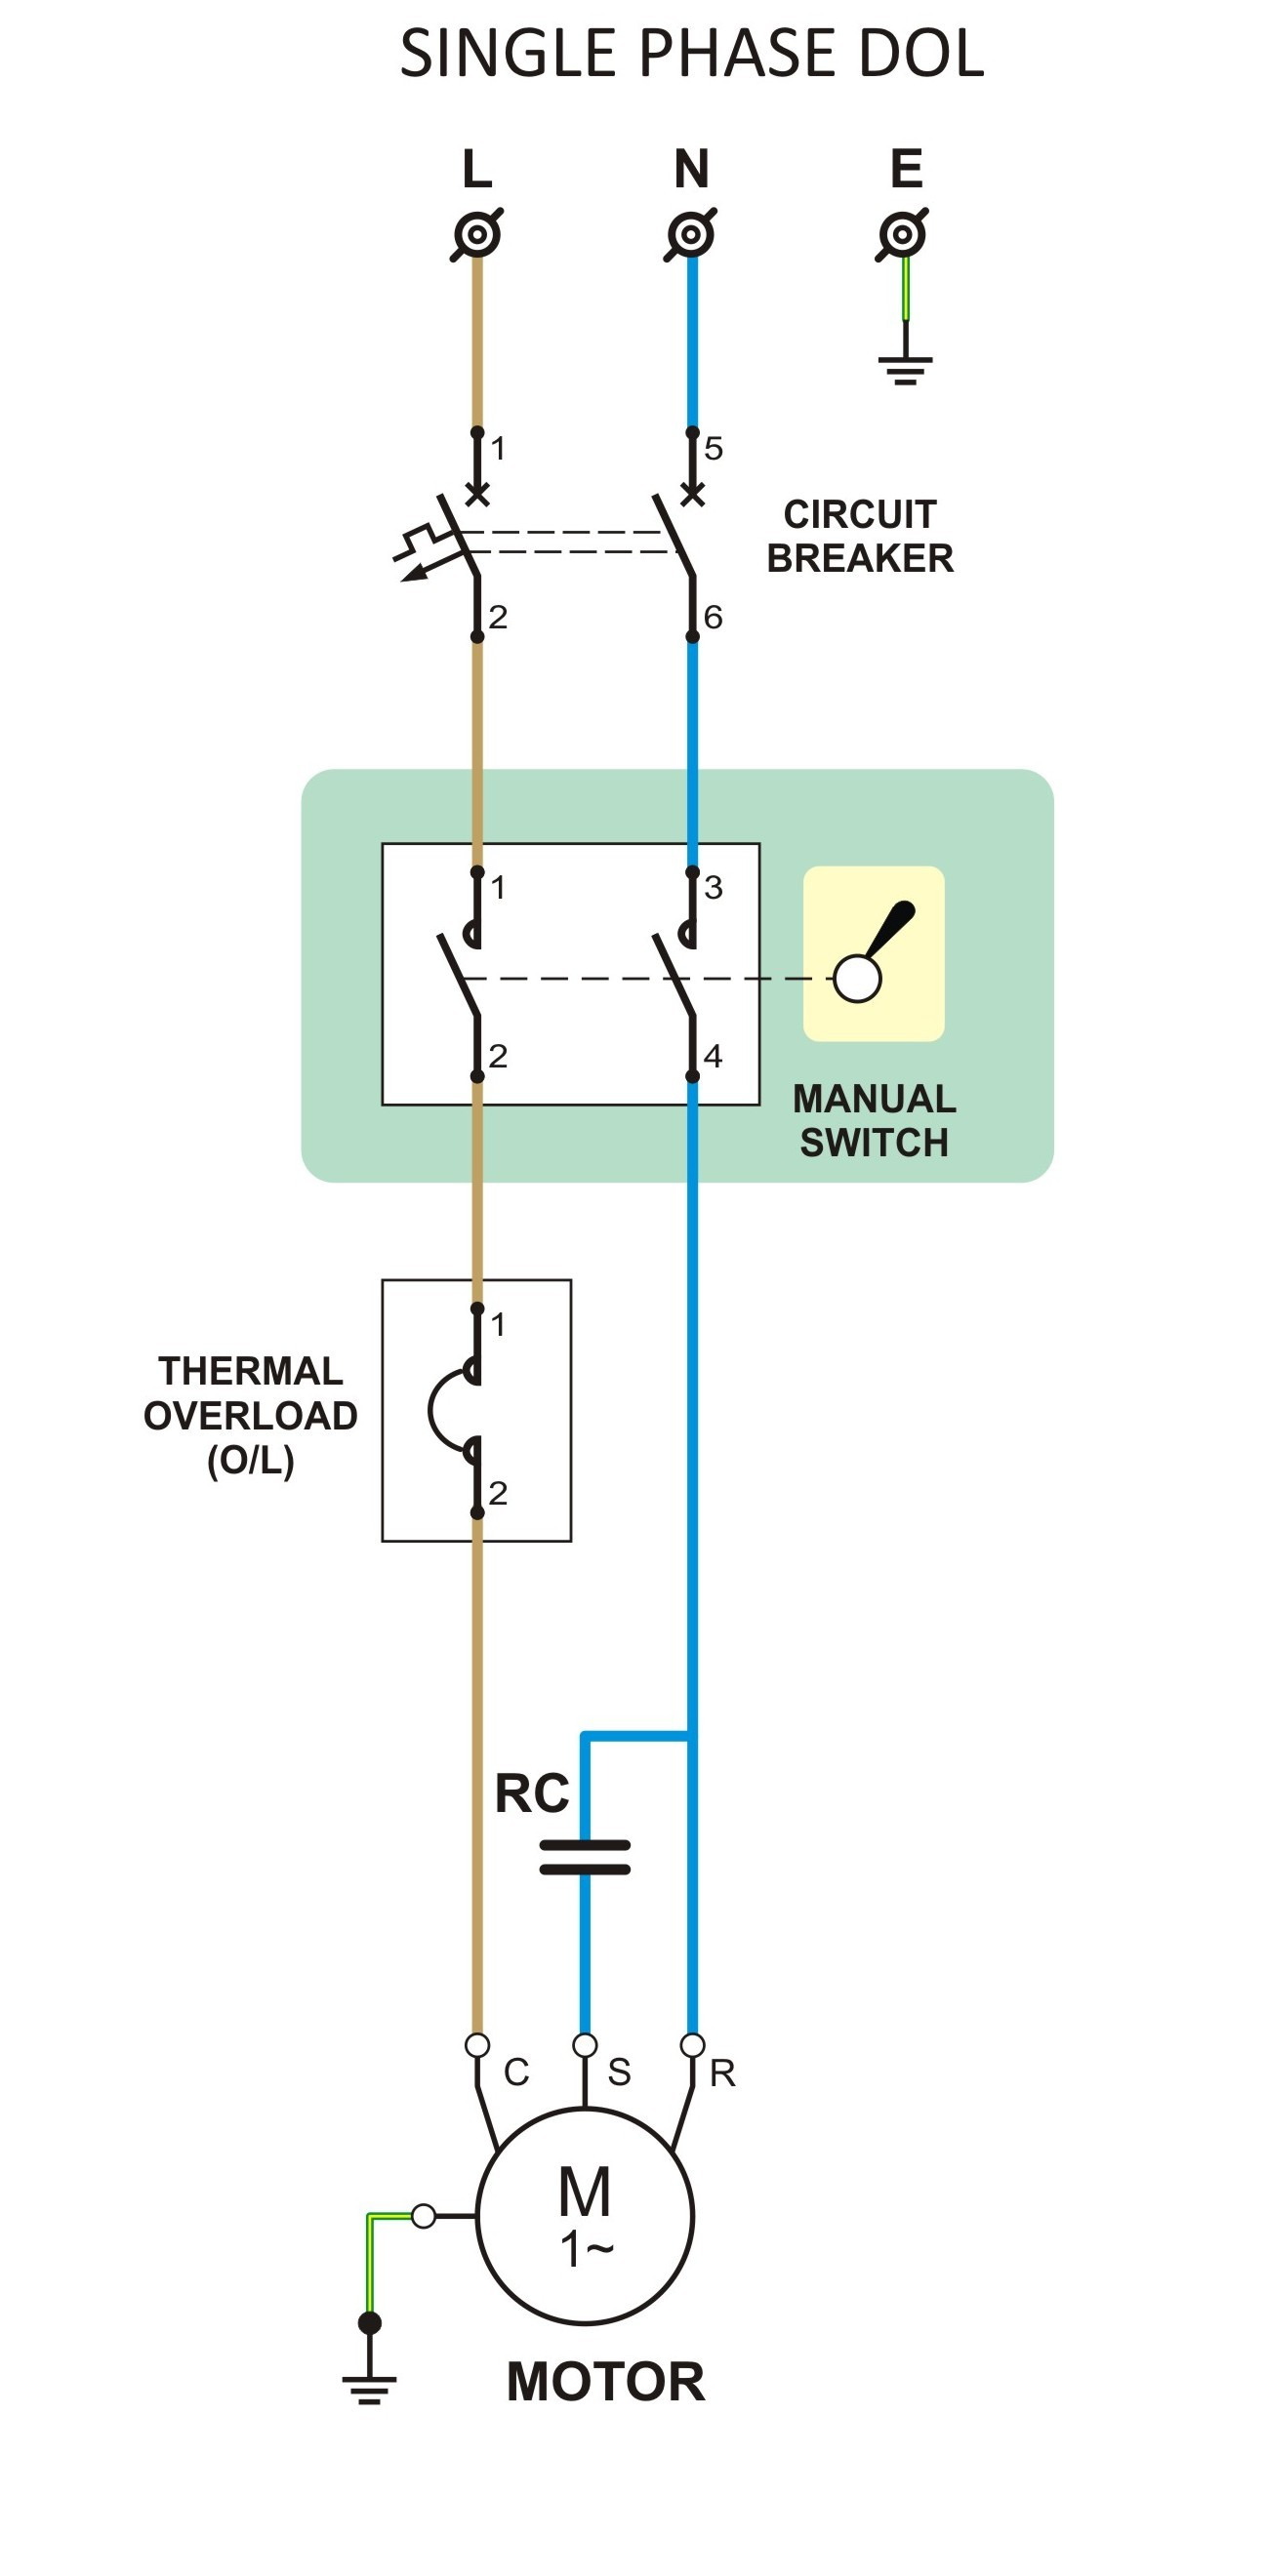 Wiring Diagram Artinya | Wiring Diagram on